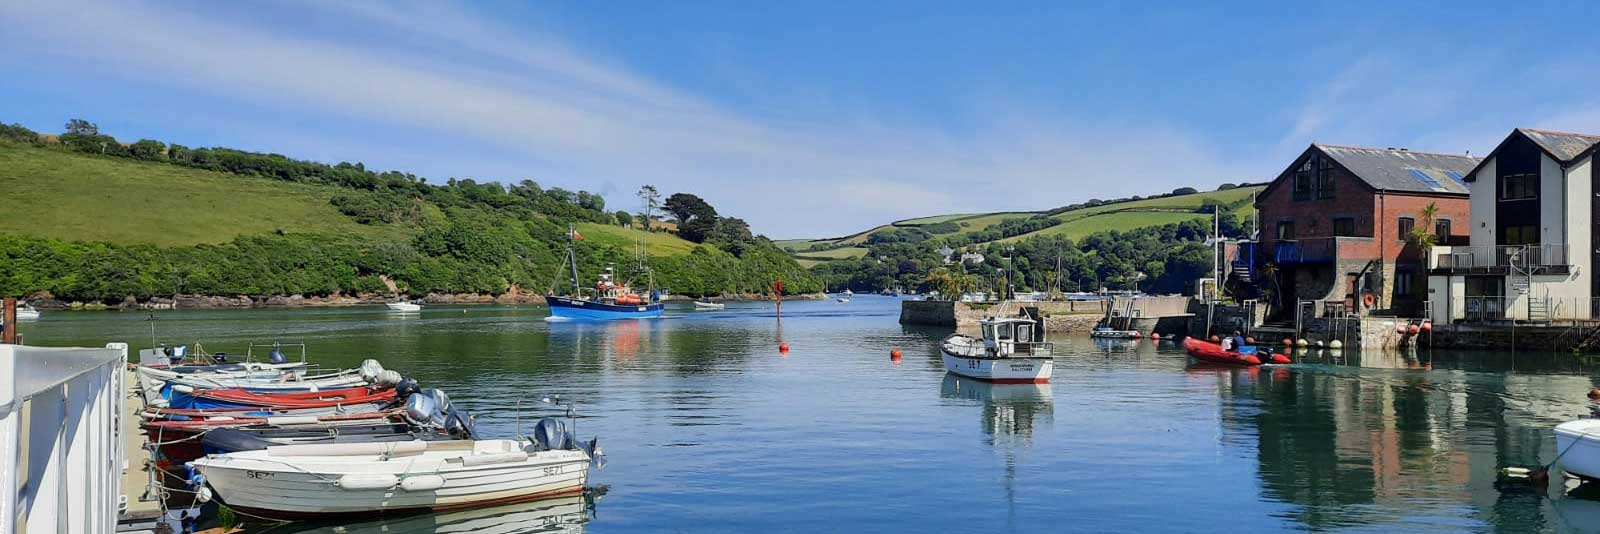 Salcombe harbour, seen from the CrabShed